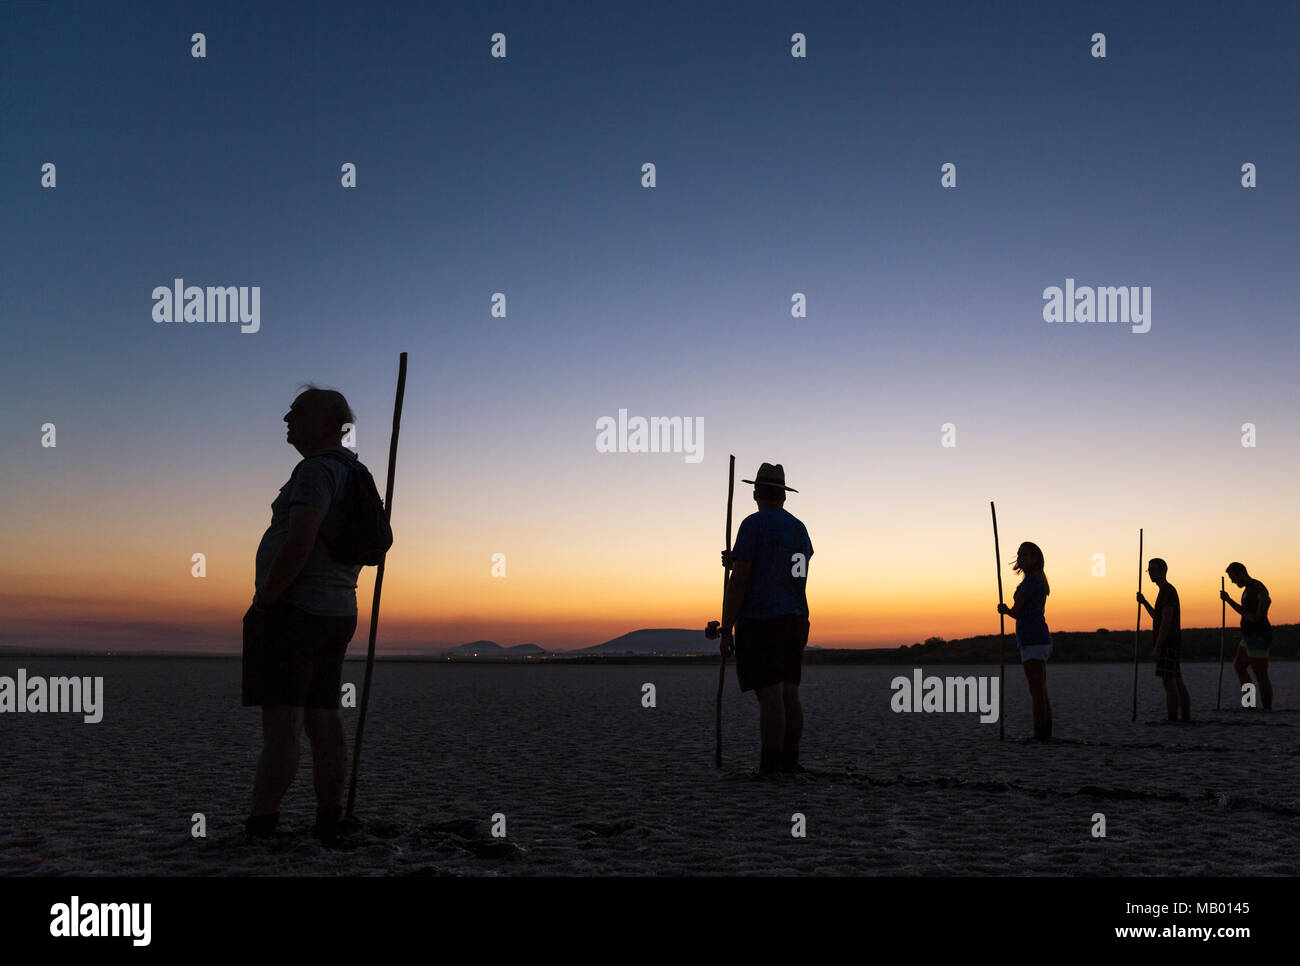 Volunteers at dawn at the Laguna de Fuente de Piedra, waiting for the start of  the immature Greater Flamingo (Phoenicopterus